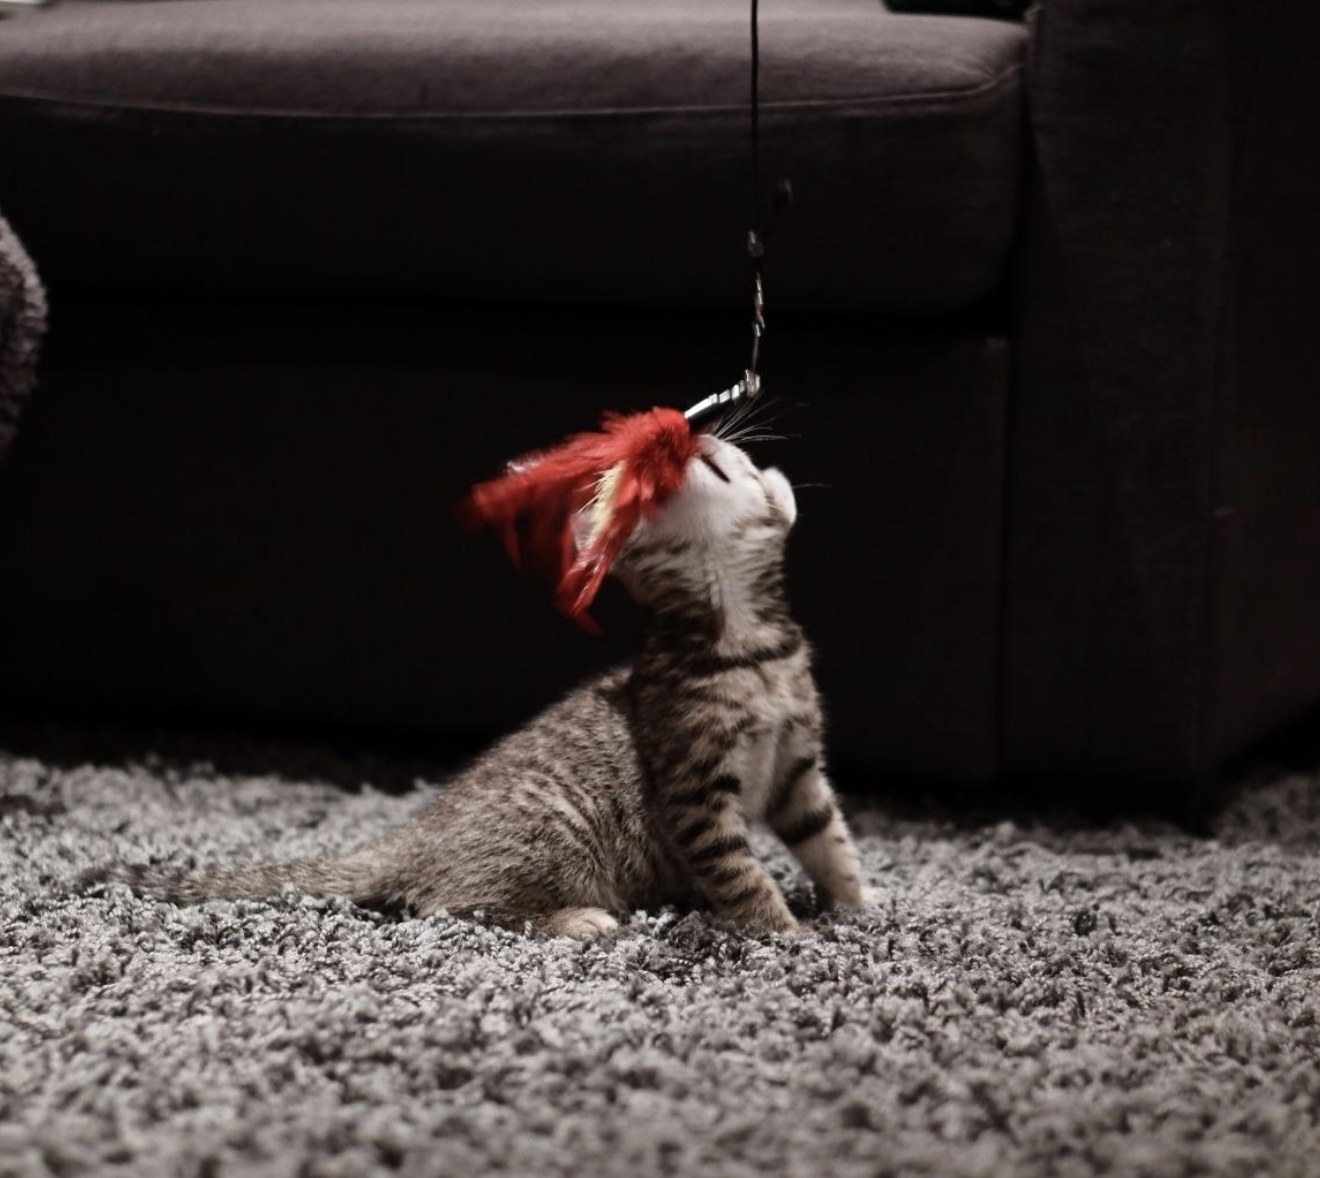 a striped kitten playing with a red feather attached to a wand